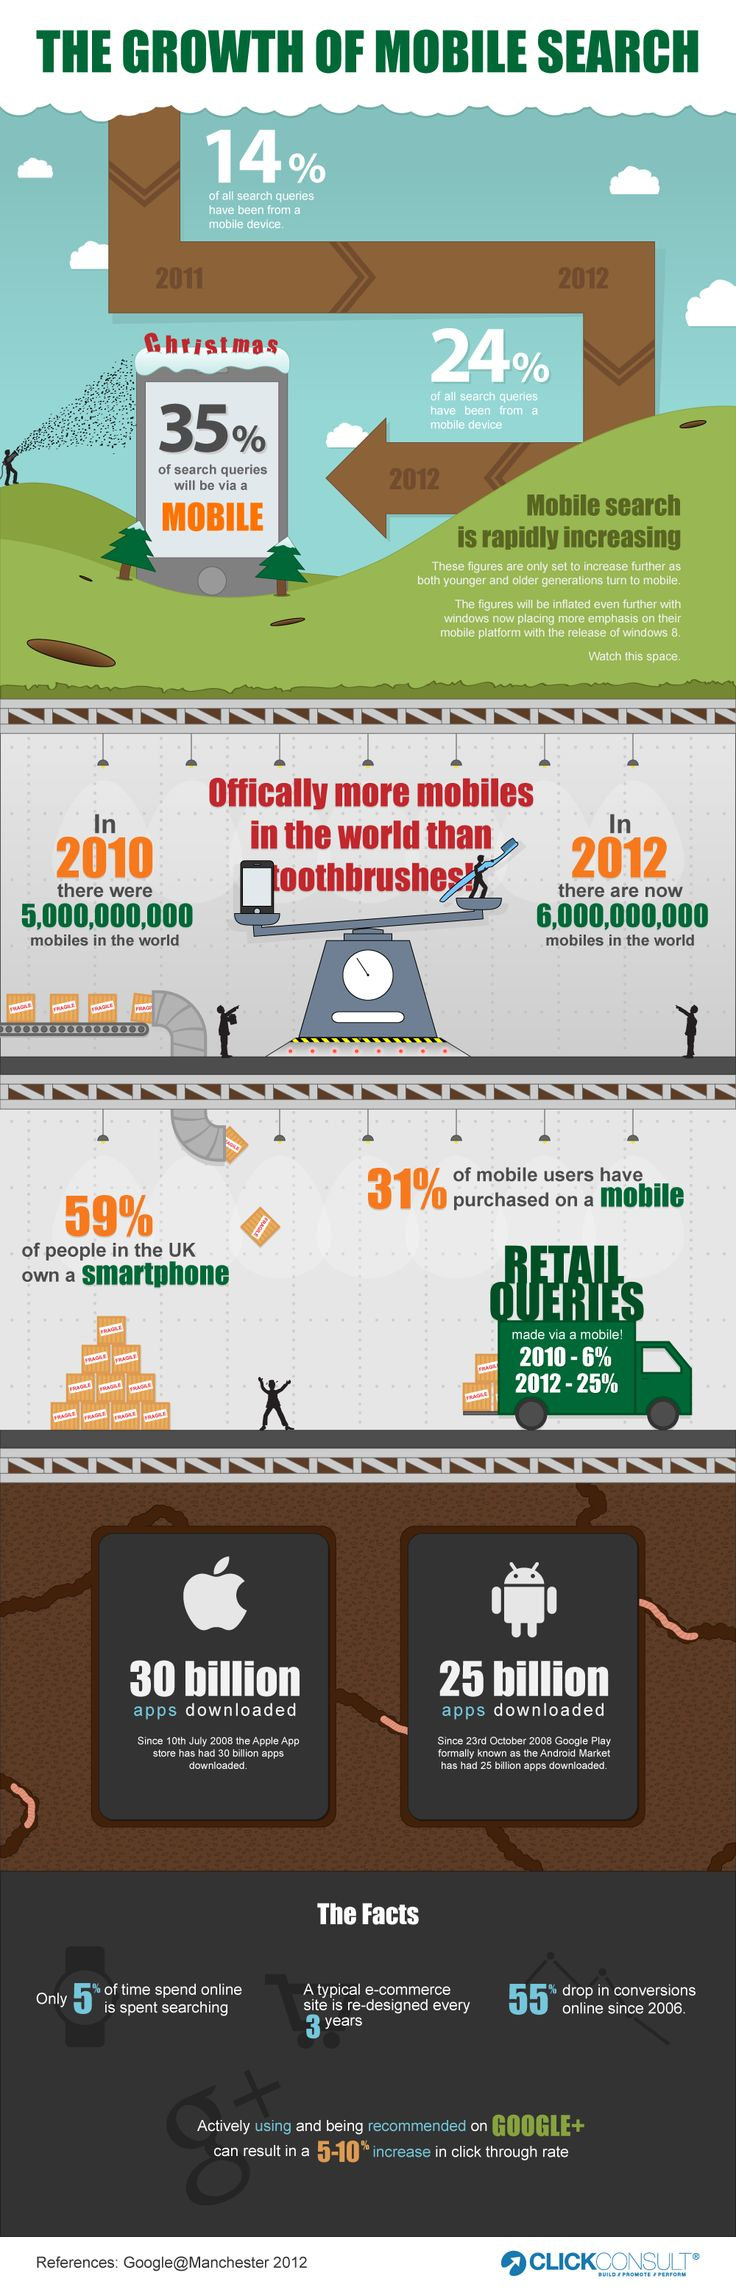 The Growth of #Mobile Search